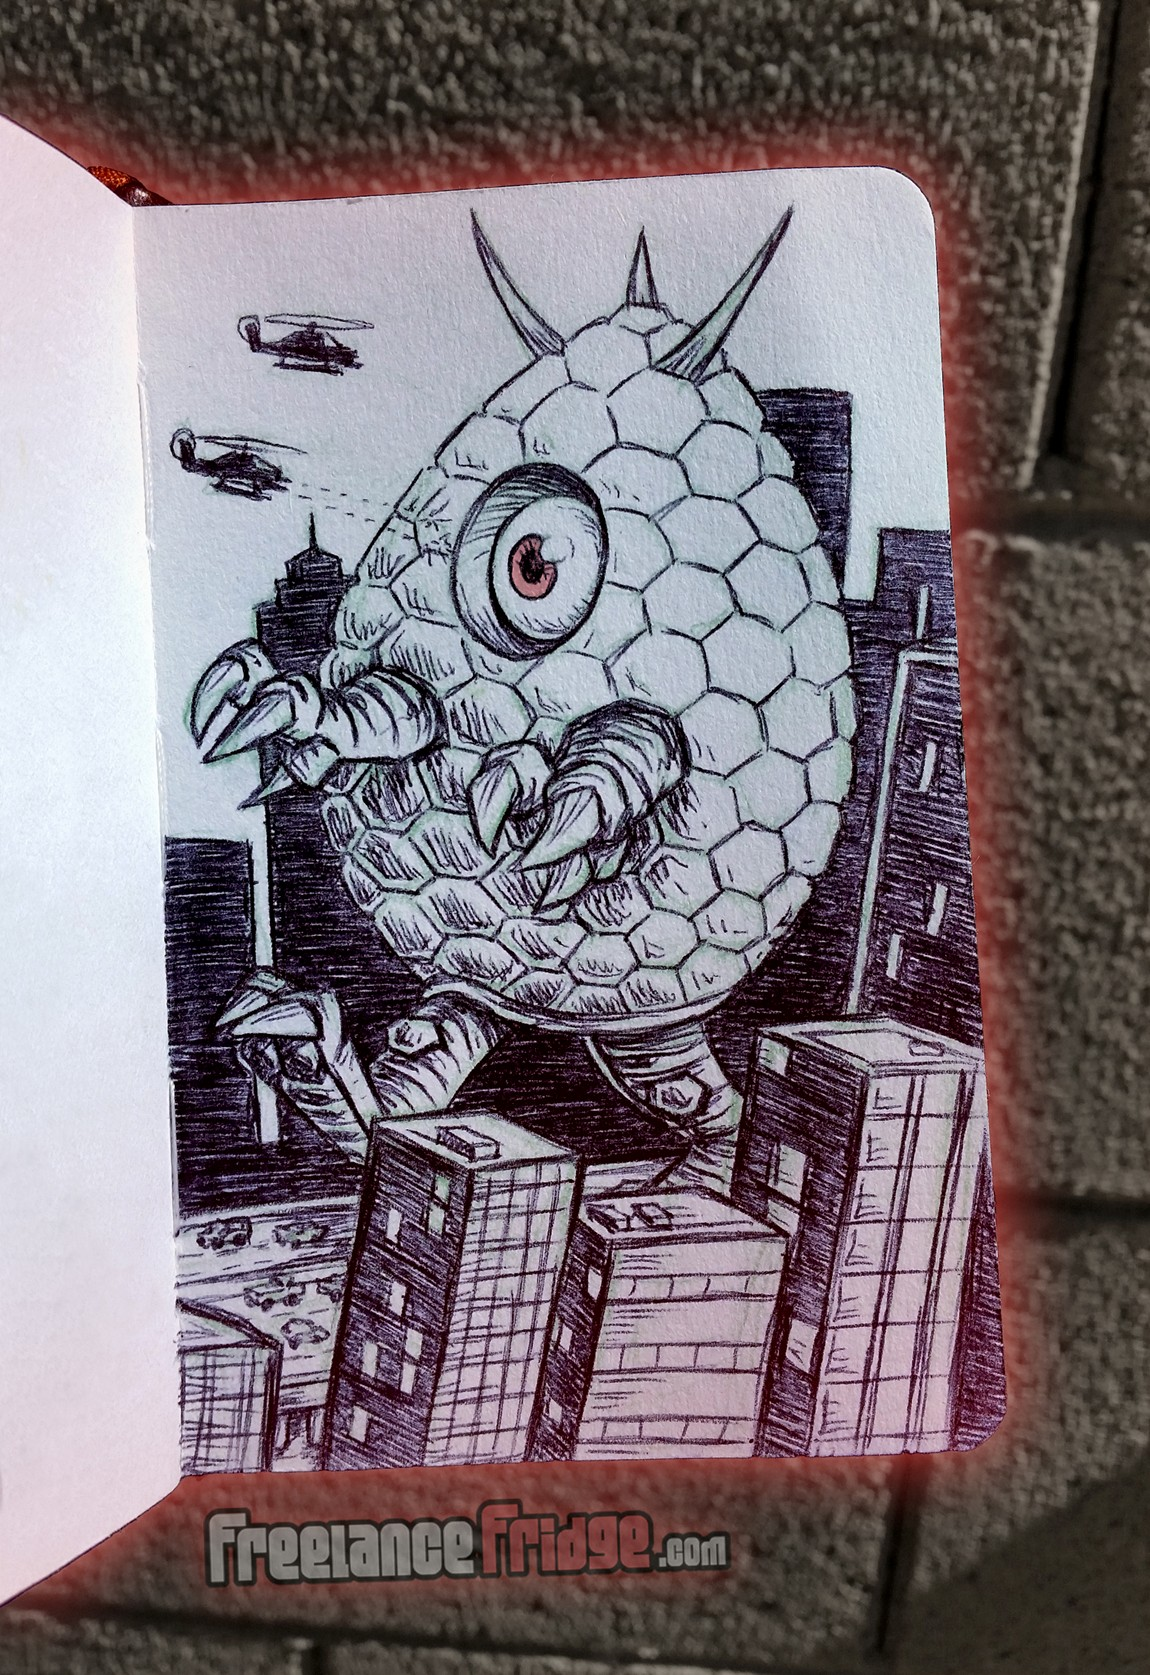 Big Egg Alien Kaiju Character Creature Concept Cartoon Pencil and Ball Point Pen Sketch Drawing Illustration